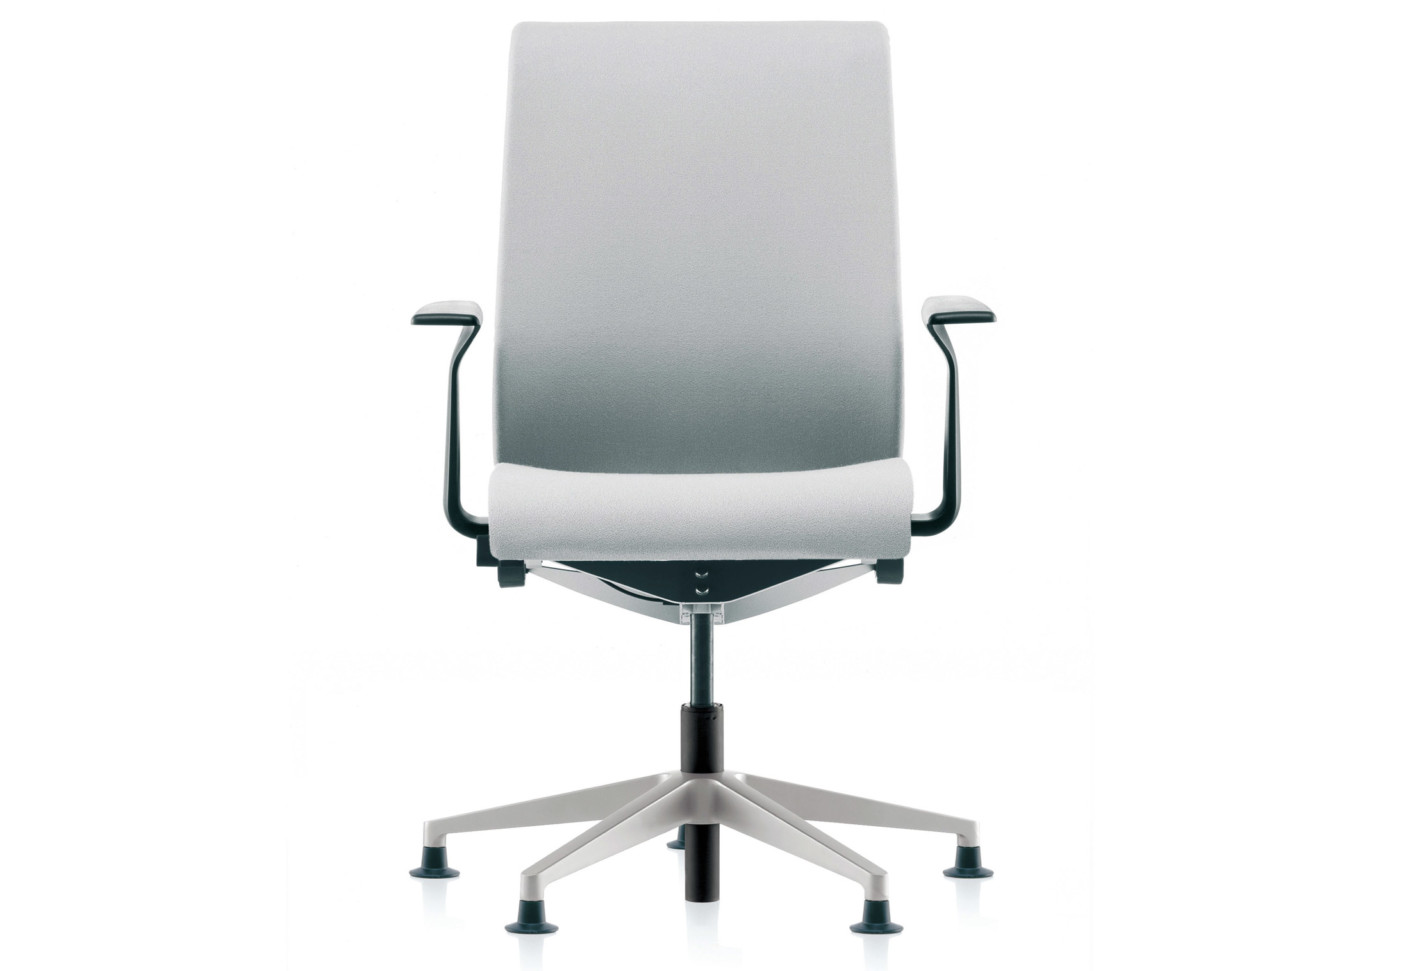 Think conference chair by Steelcase